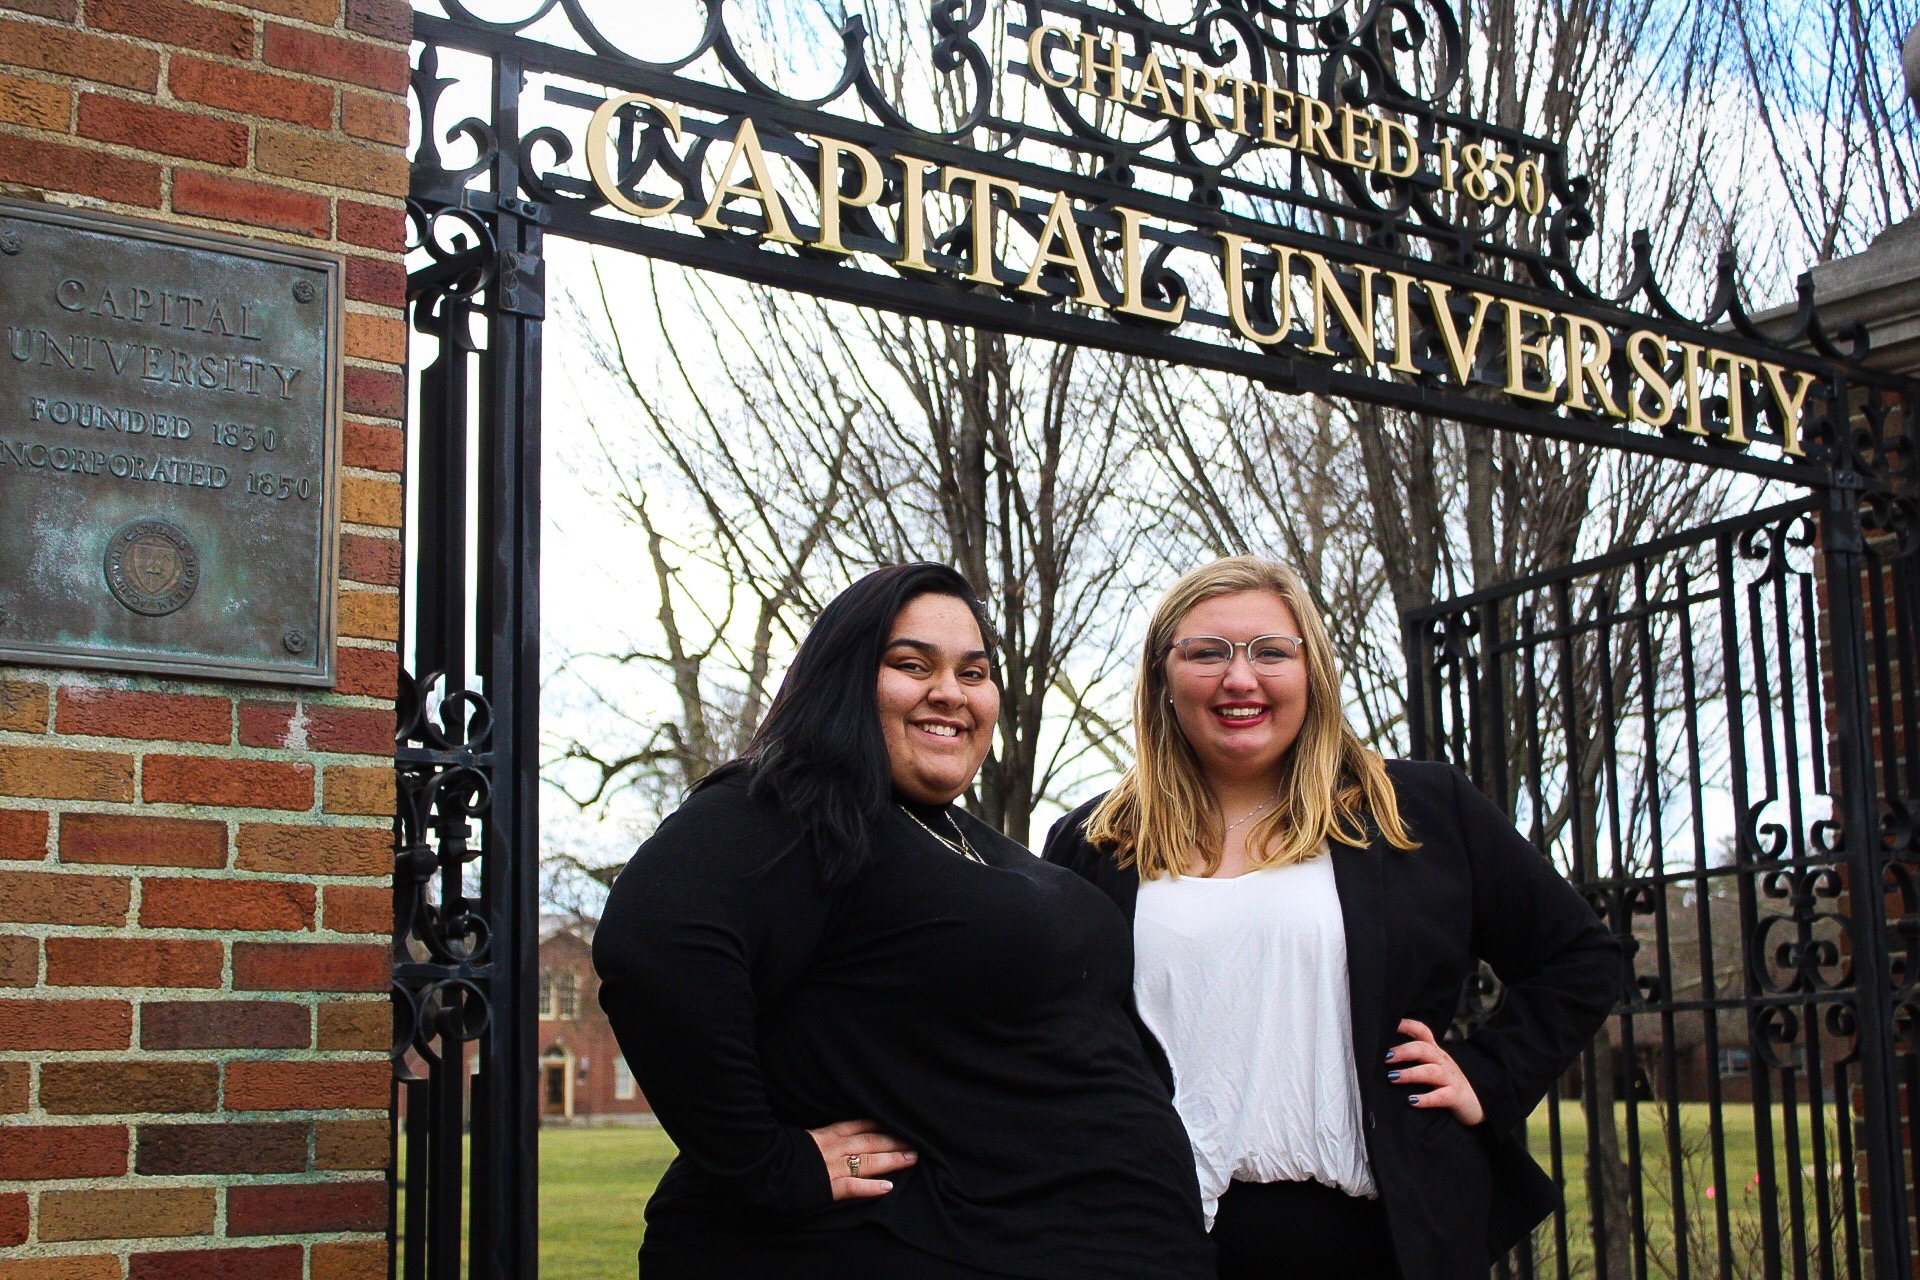 Student Government: Candidate Spotlight